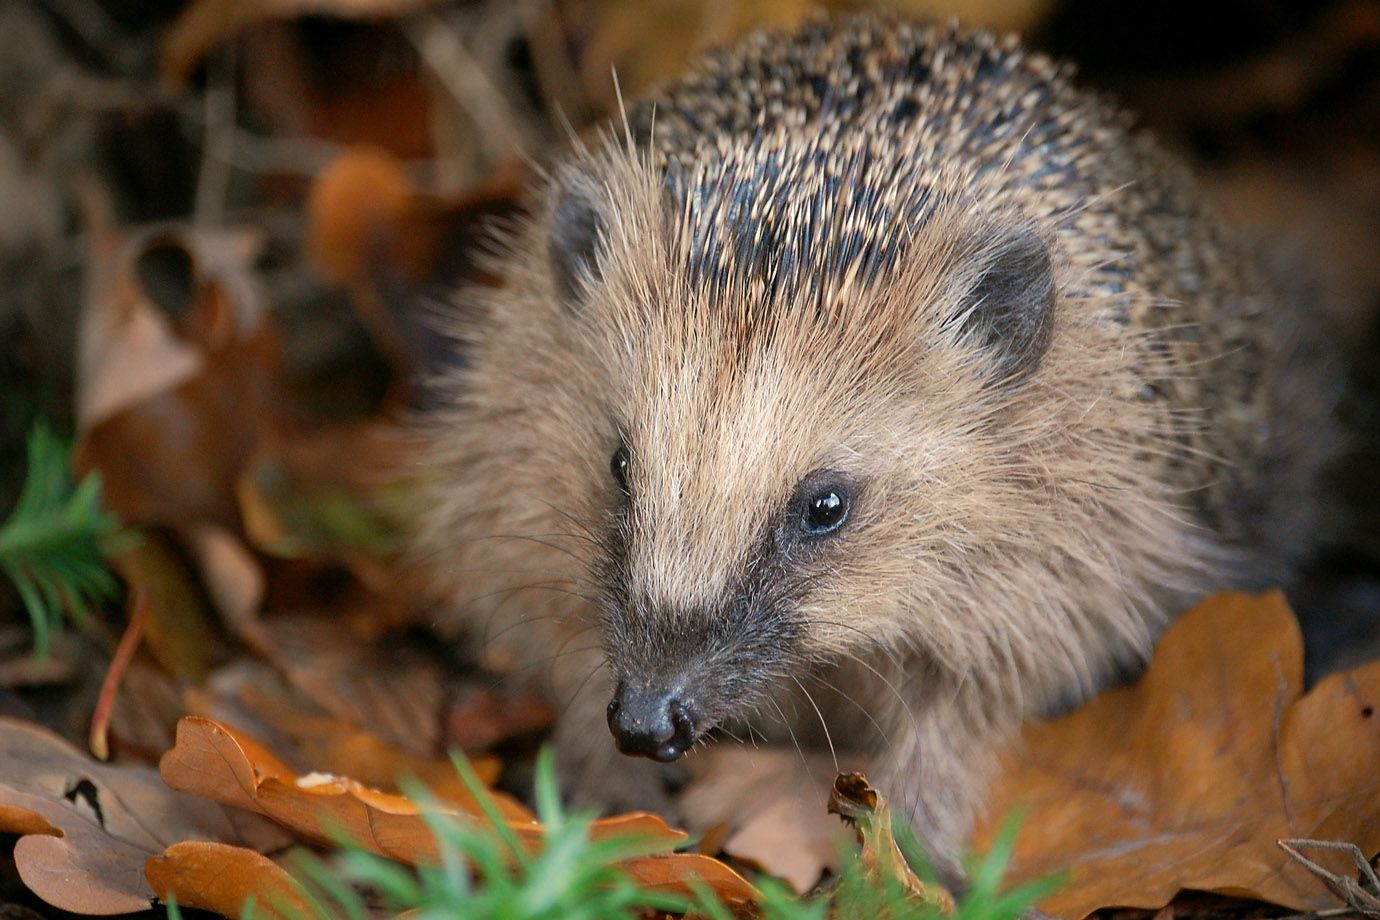 Hedgehog in the autumn foliage